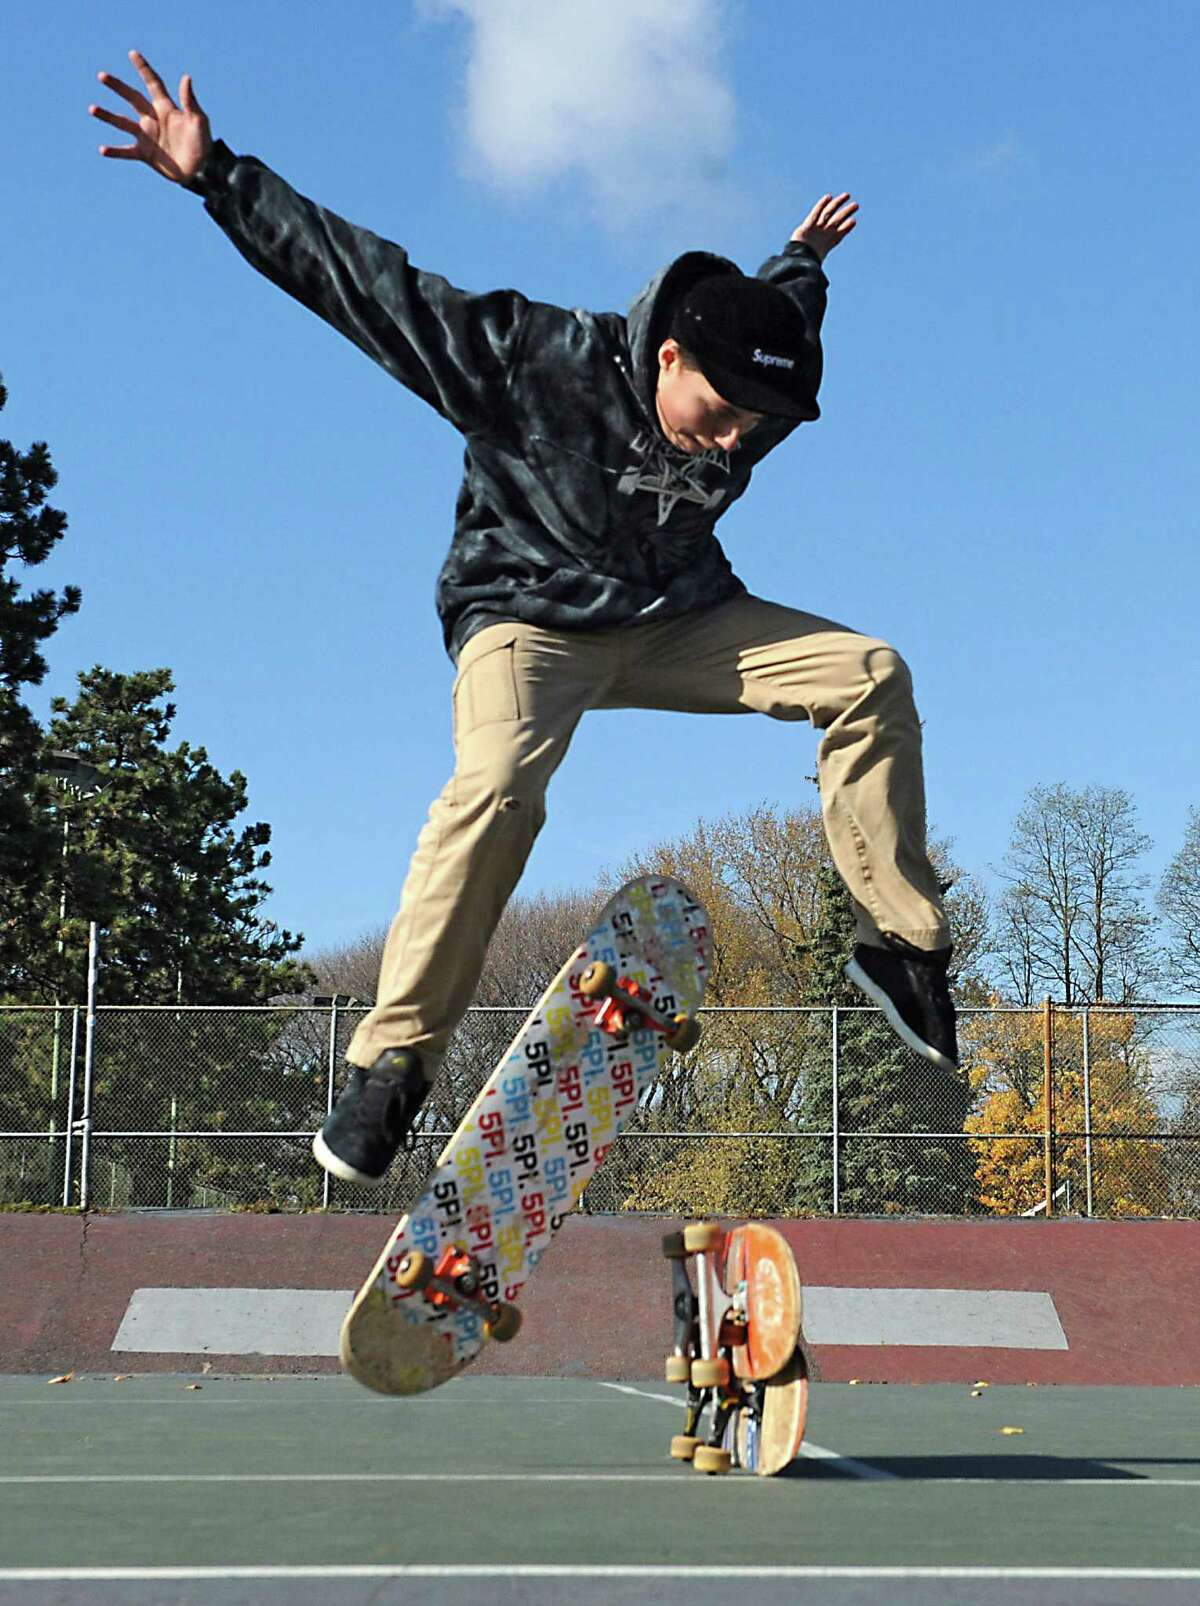 Skateboarder Anthony Defrancesco, 14, of Rensselaer works on his moves at the dilapidated tennis courts in Washington Park on Tuesday, Nov. 11, 2014 in Albany, N.Y. These four dilapidated tennis courts in Washington Park could become the city's first public skateboard park. The Recreation Department is soliciting public input on that possibility - as well as suggestions for other potential sites - starting Thursday night at a public session from 6 p.m. to 8 p.m. at Bleecker Stadium. (Lori Van Buren / Times Union) ORG XMIT: MER2015121114341030